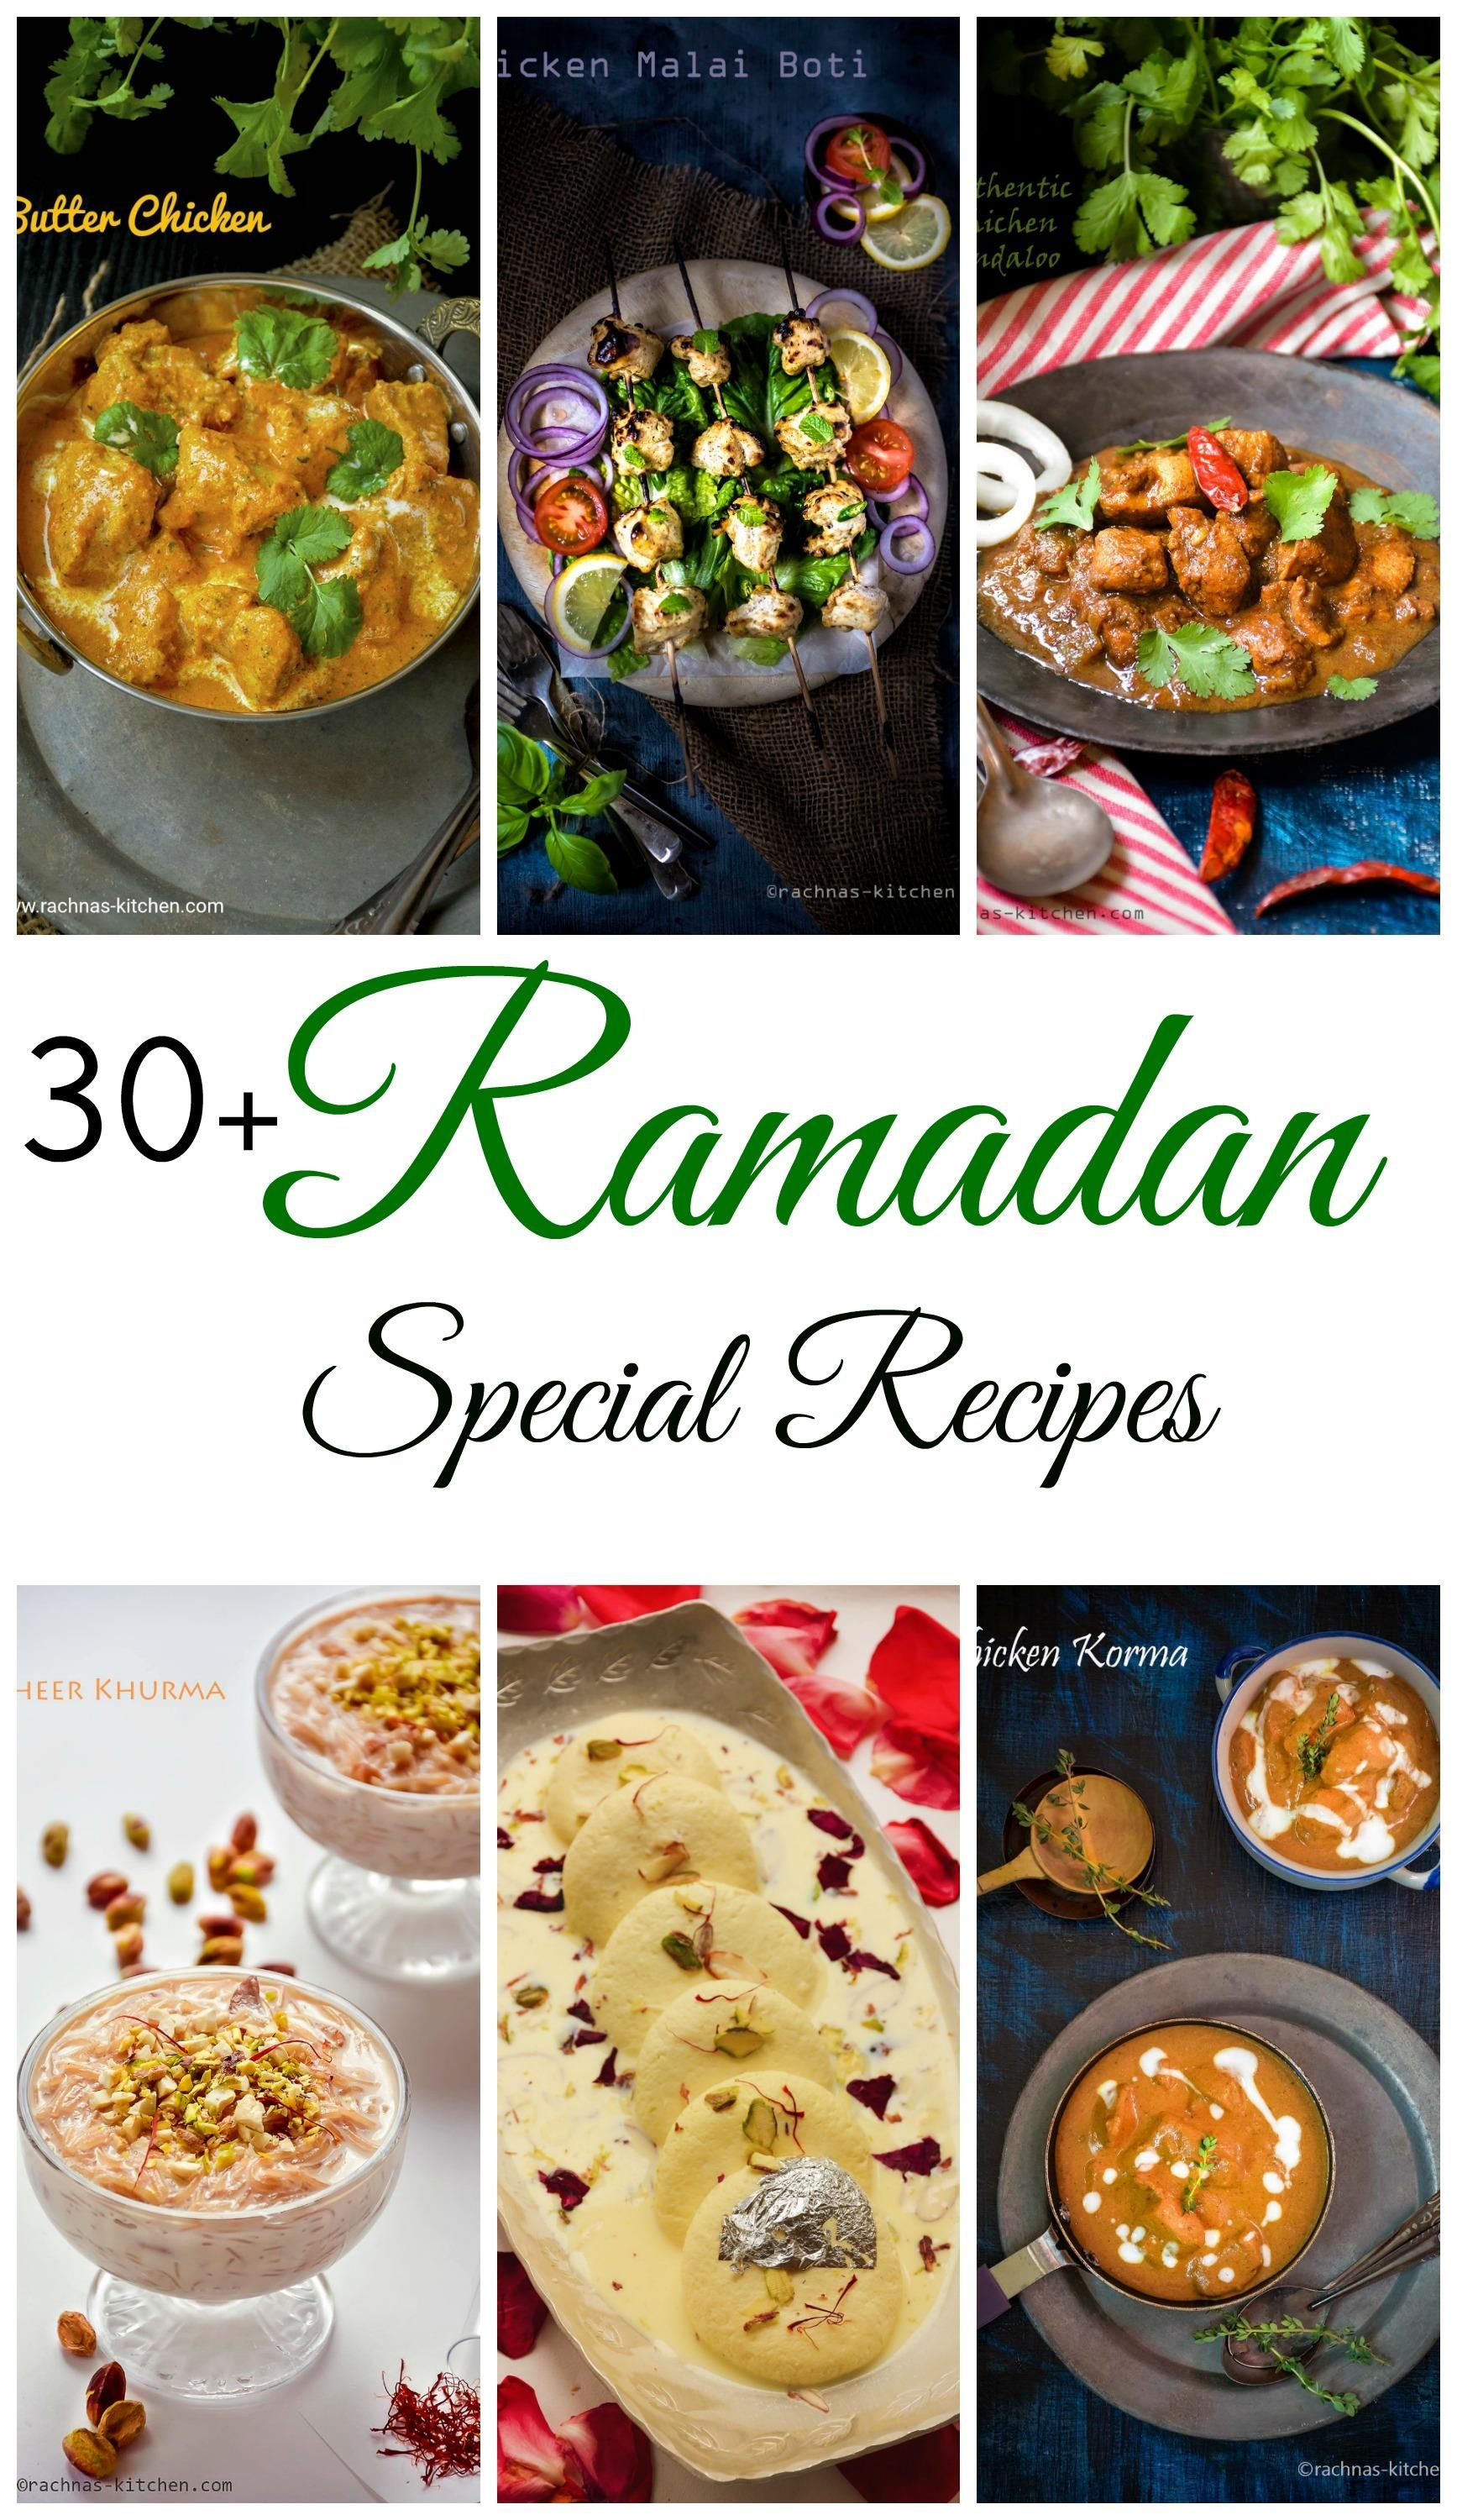 Iftar recipes ramadan special recipes comida rabe recetas y cocinas find 30 easy ramadan special recipes with step by step instructions iftar recipes are forumfinder